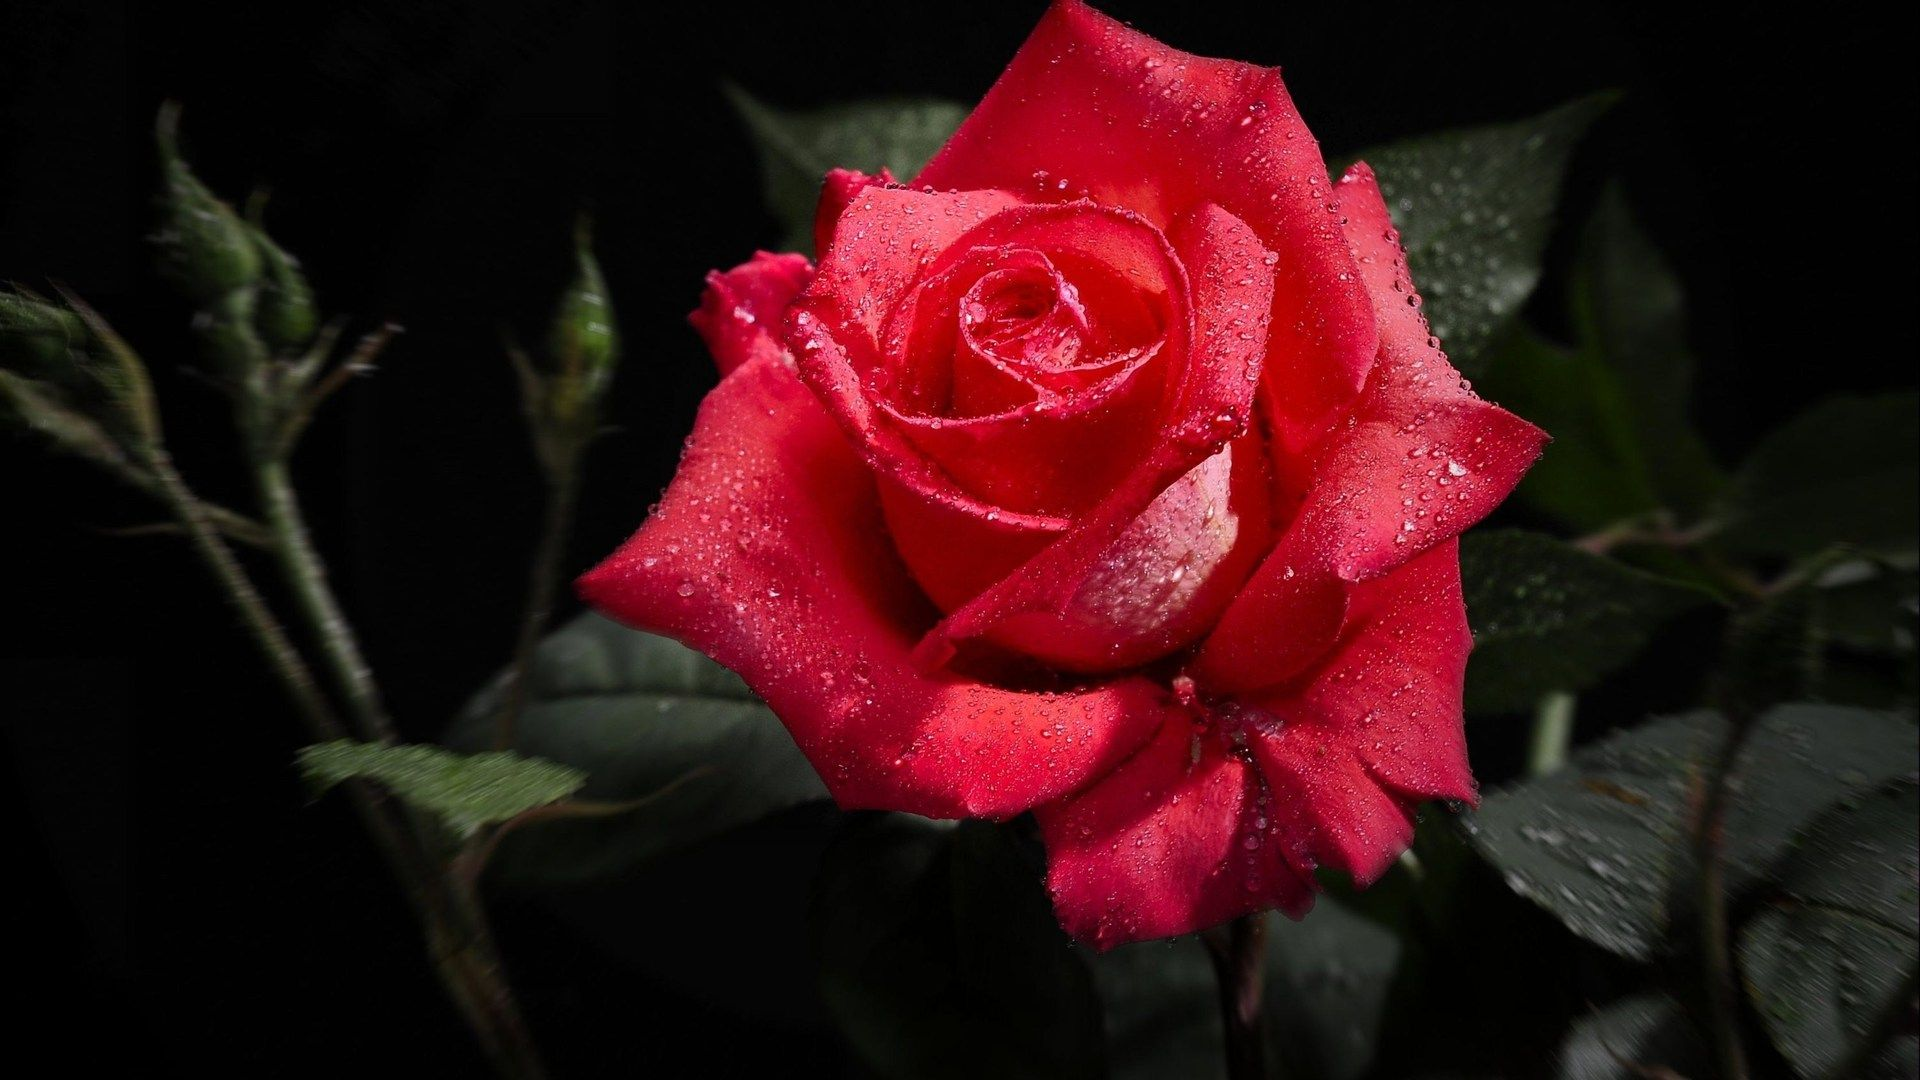 perfect red rose 1080p